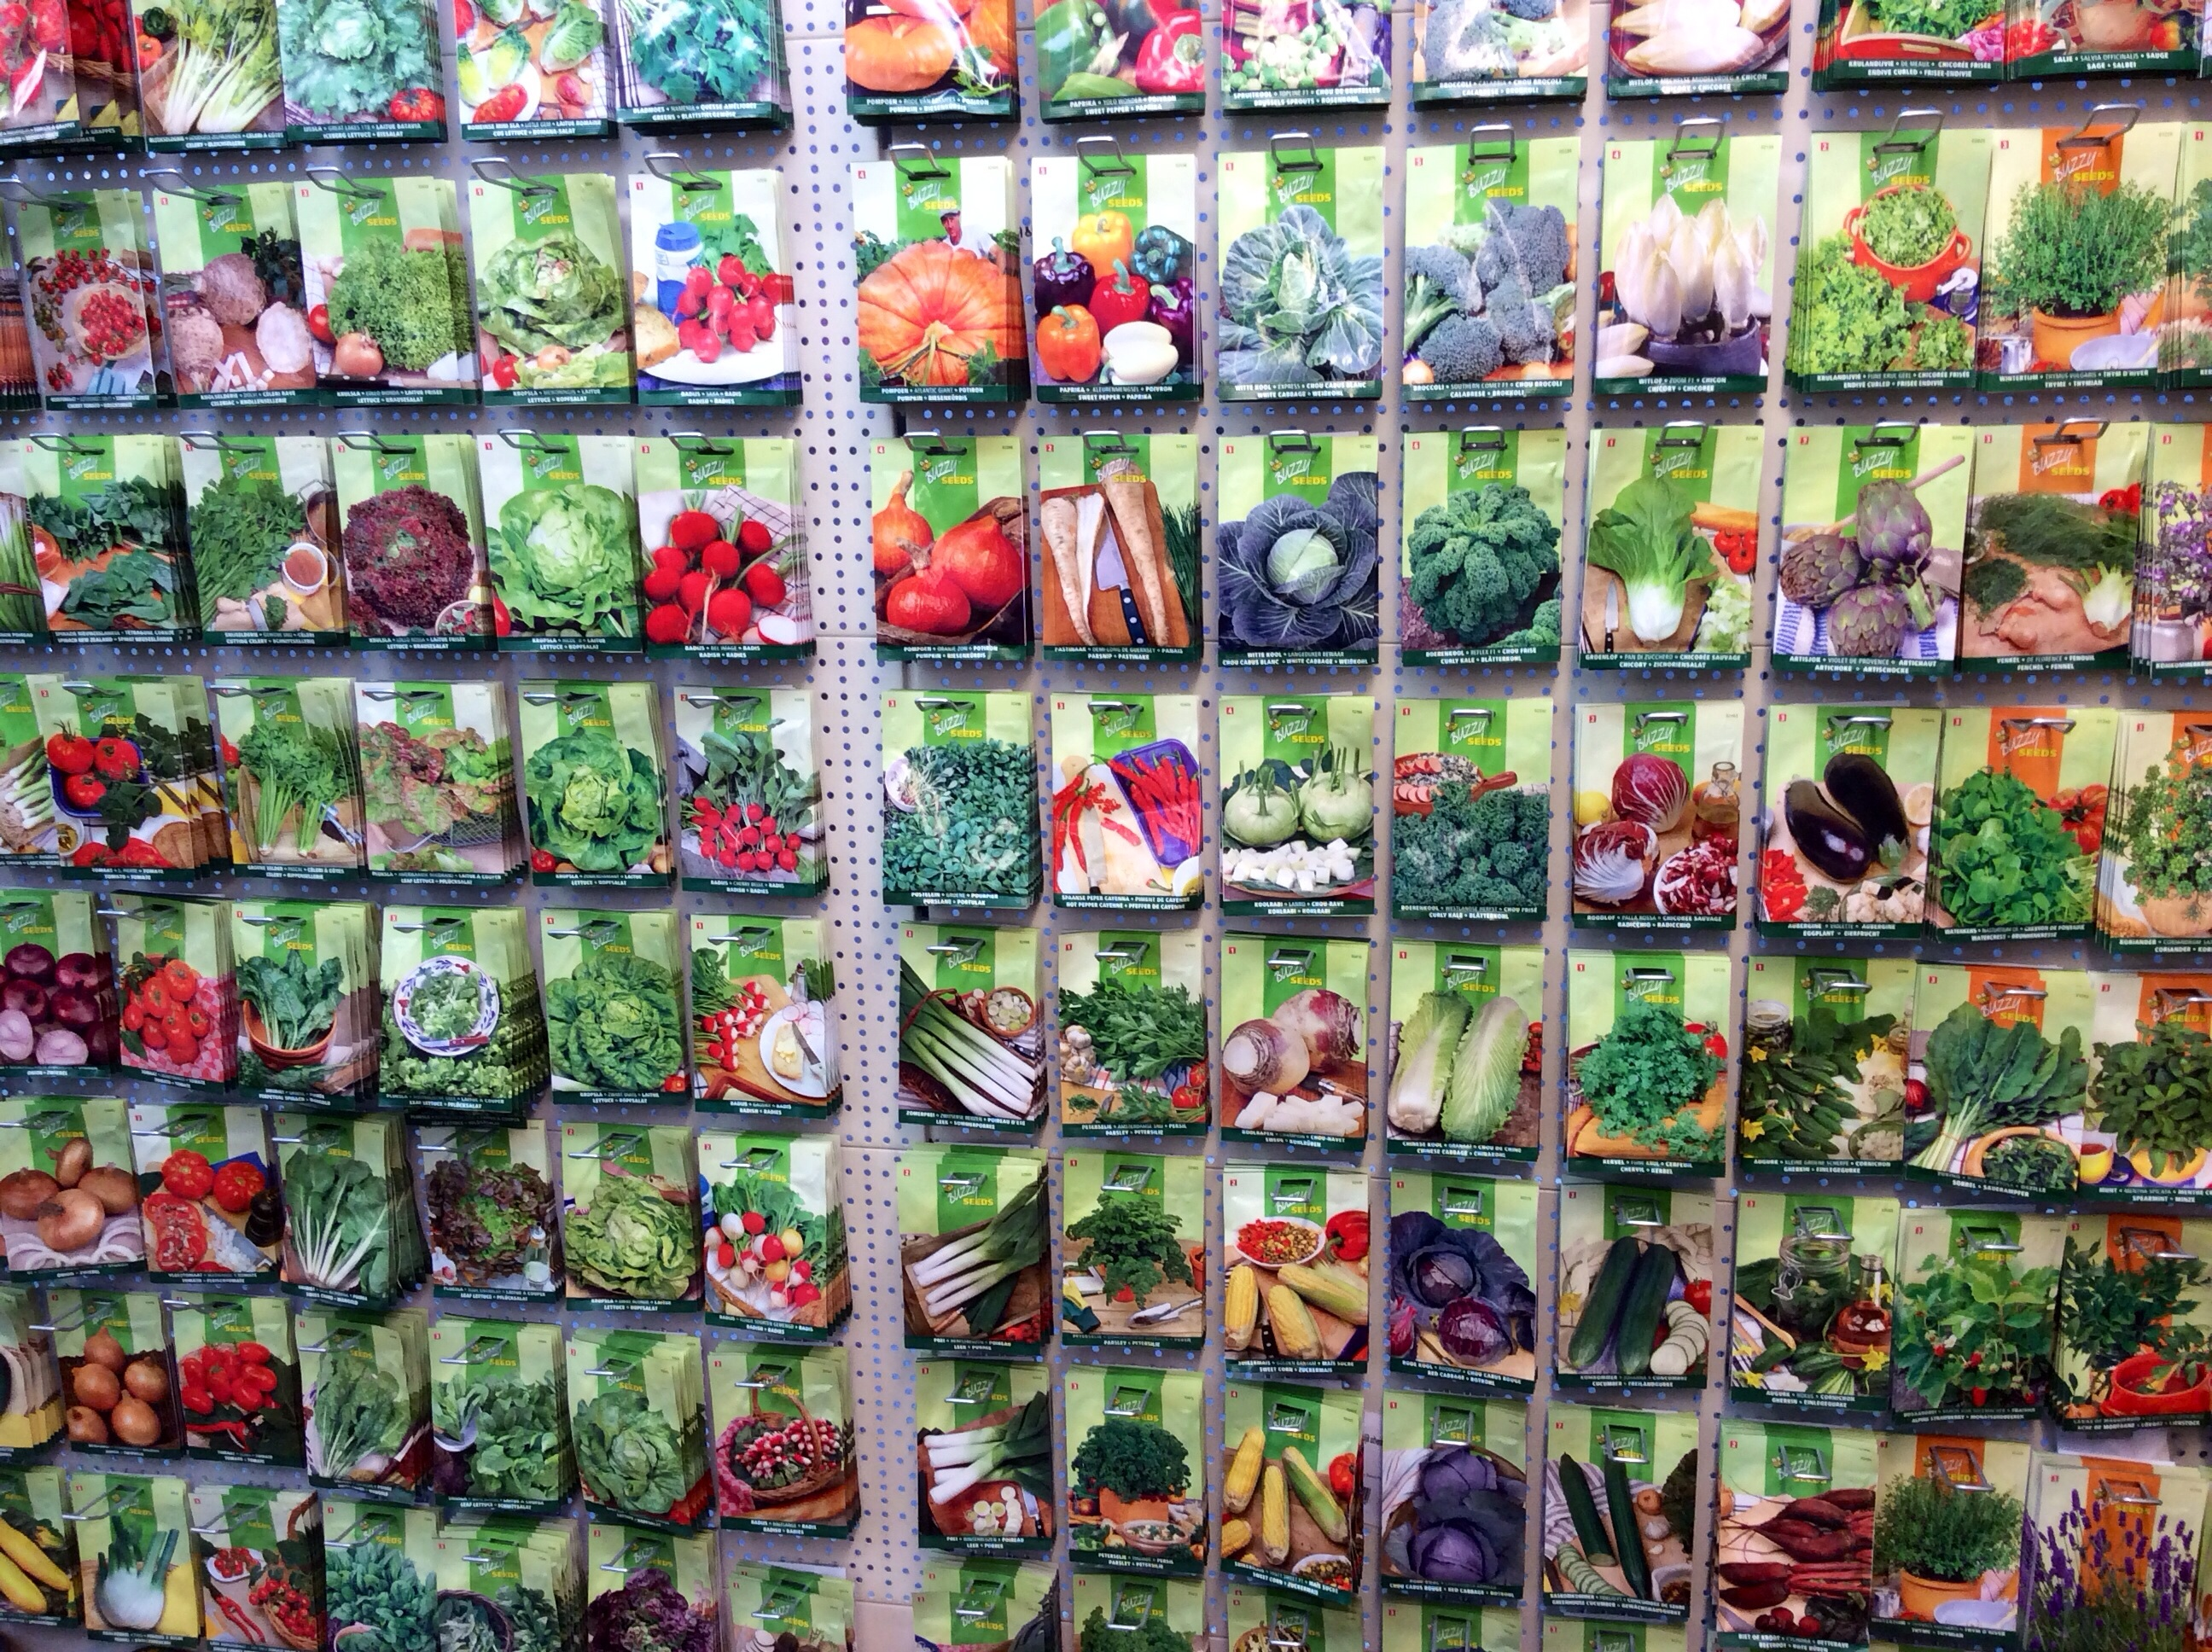 Just a small section of the extensive range of seeds on offer